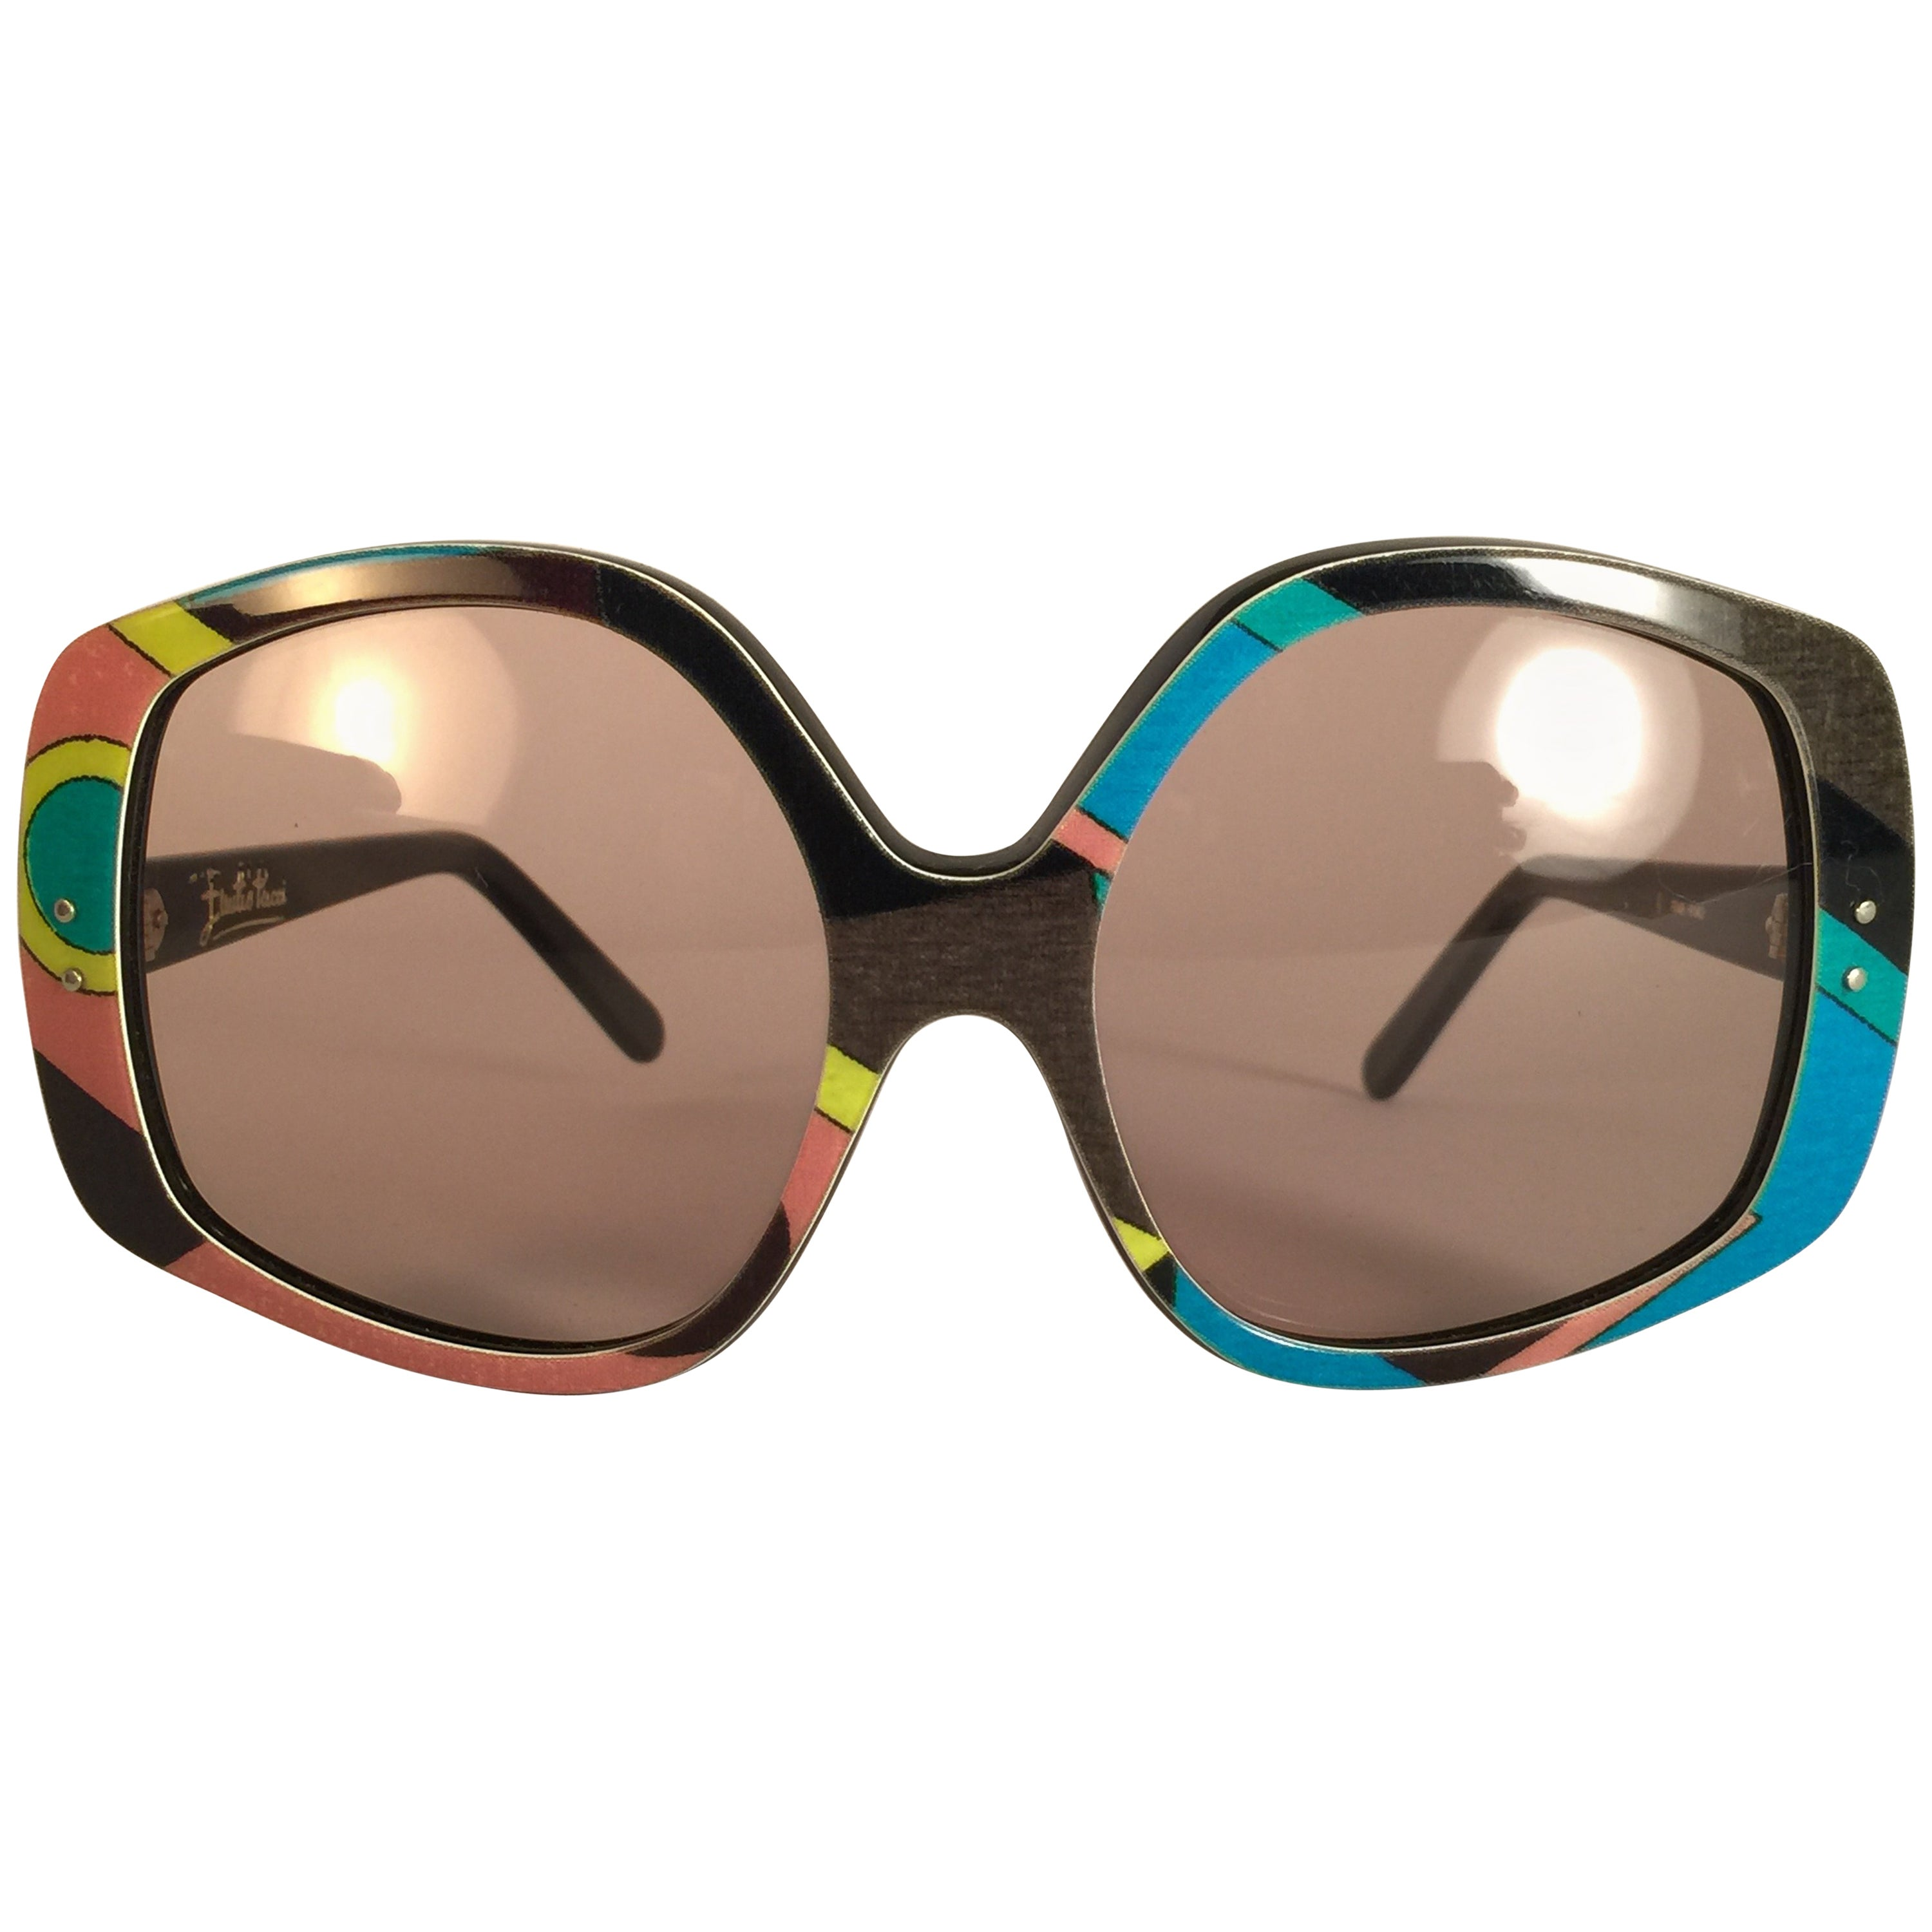 New Vintage Emilio Pucci Multicolour Oversized Collector Item Sunglasses France